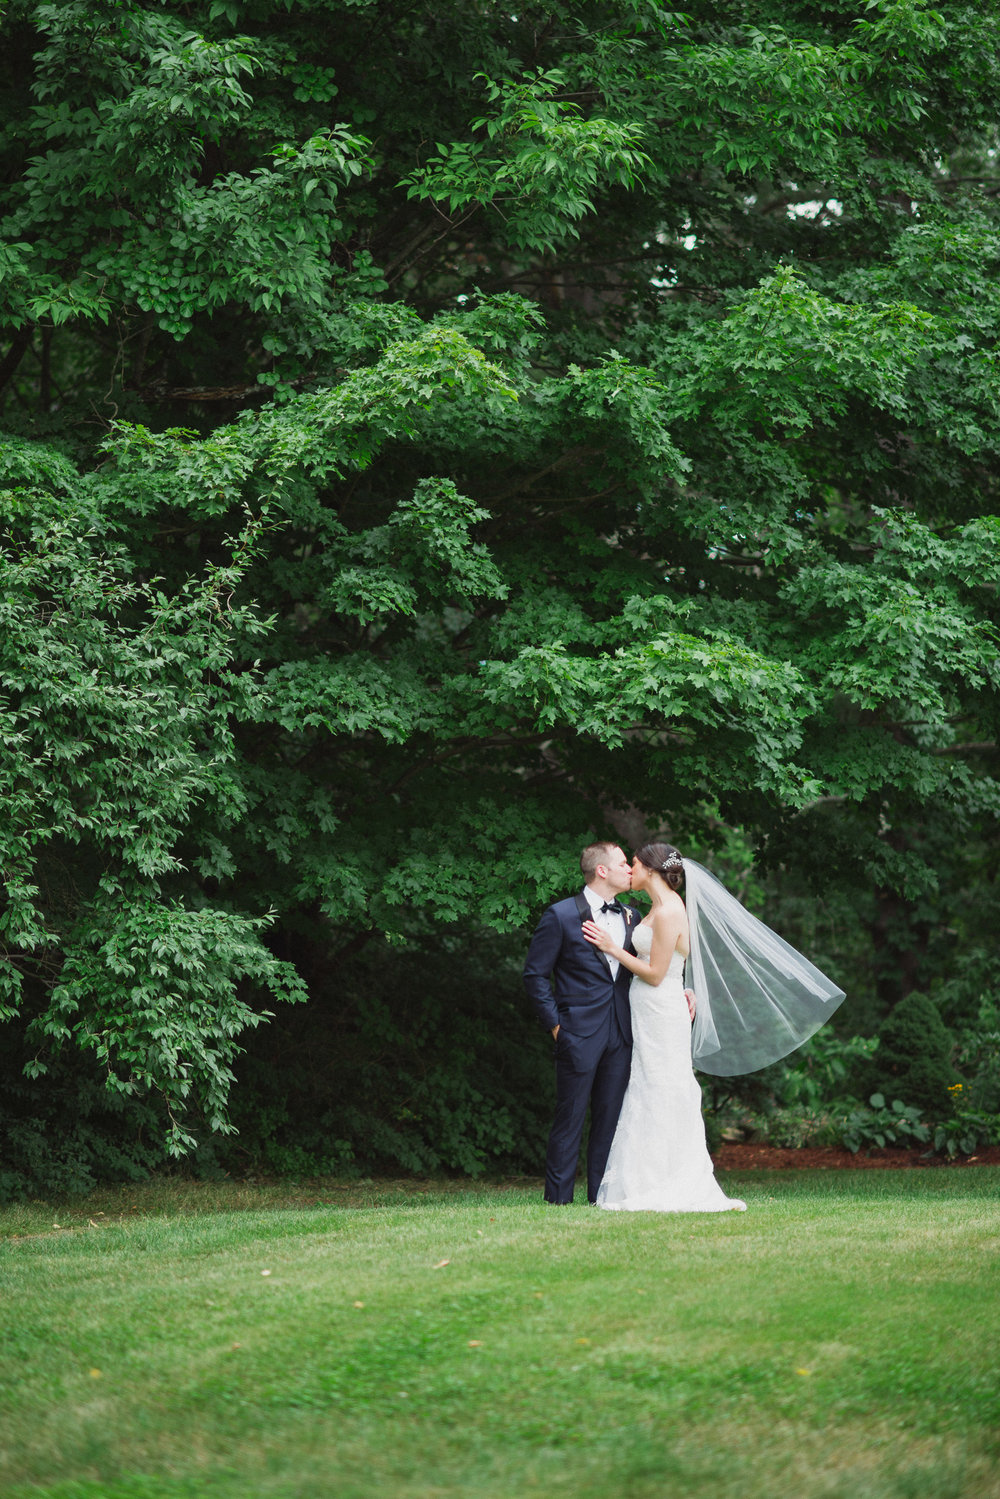 NH Wedding Photography: bride and groom walking